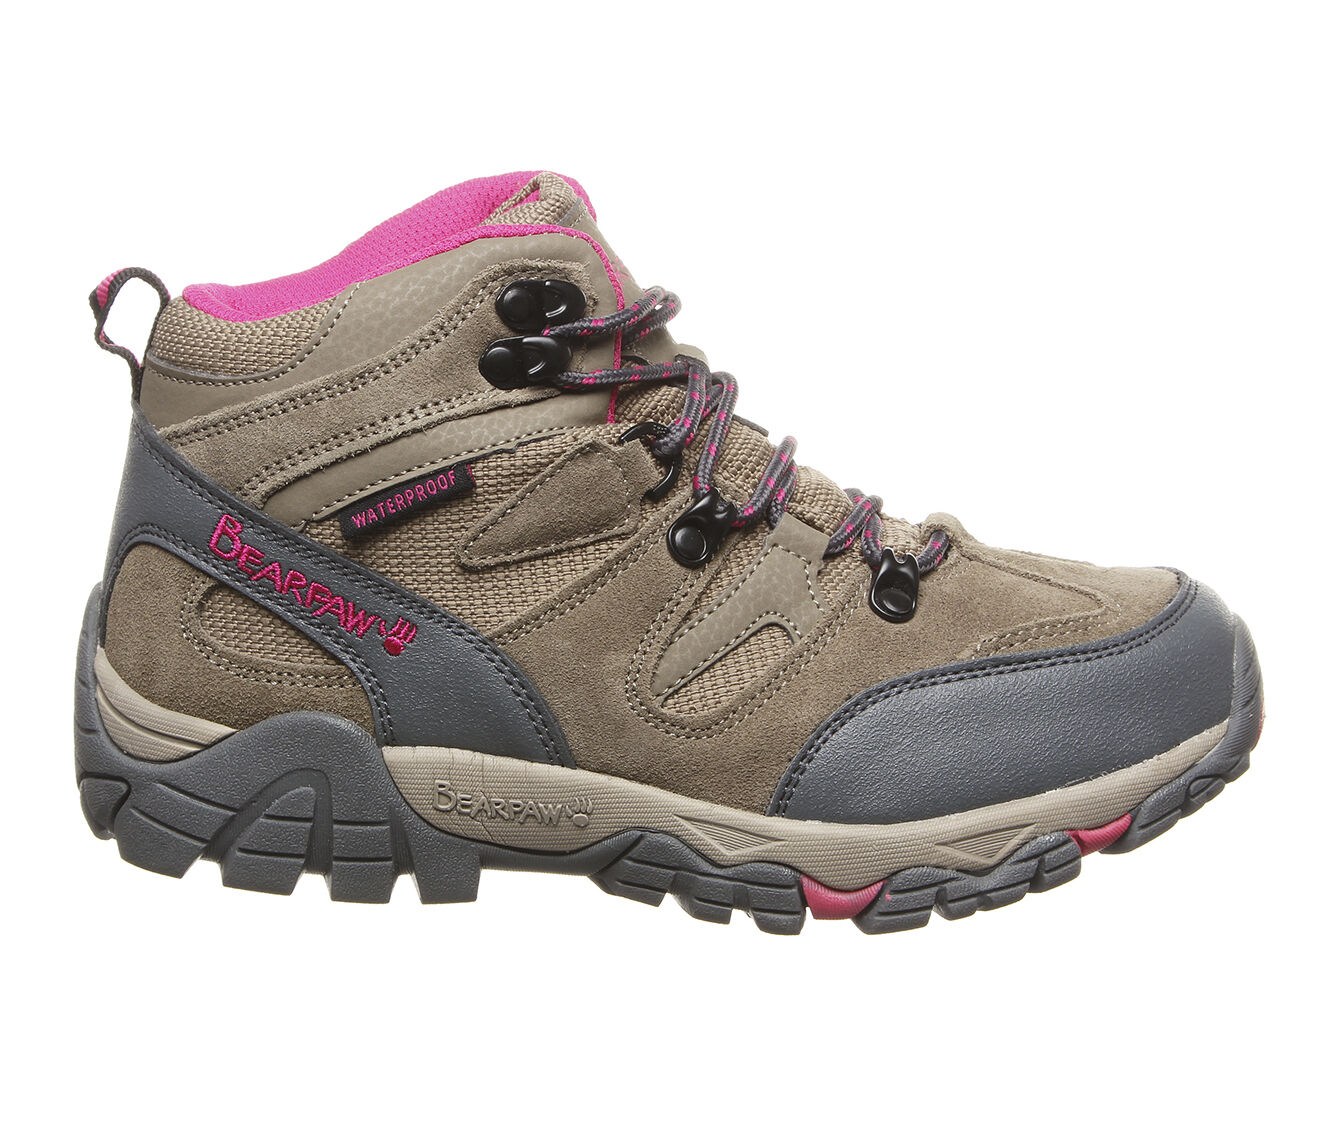 Women's Bearpaw Corsica Hiking Boots Taupe